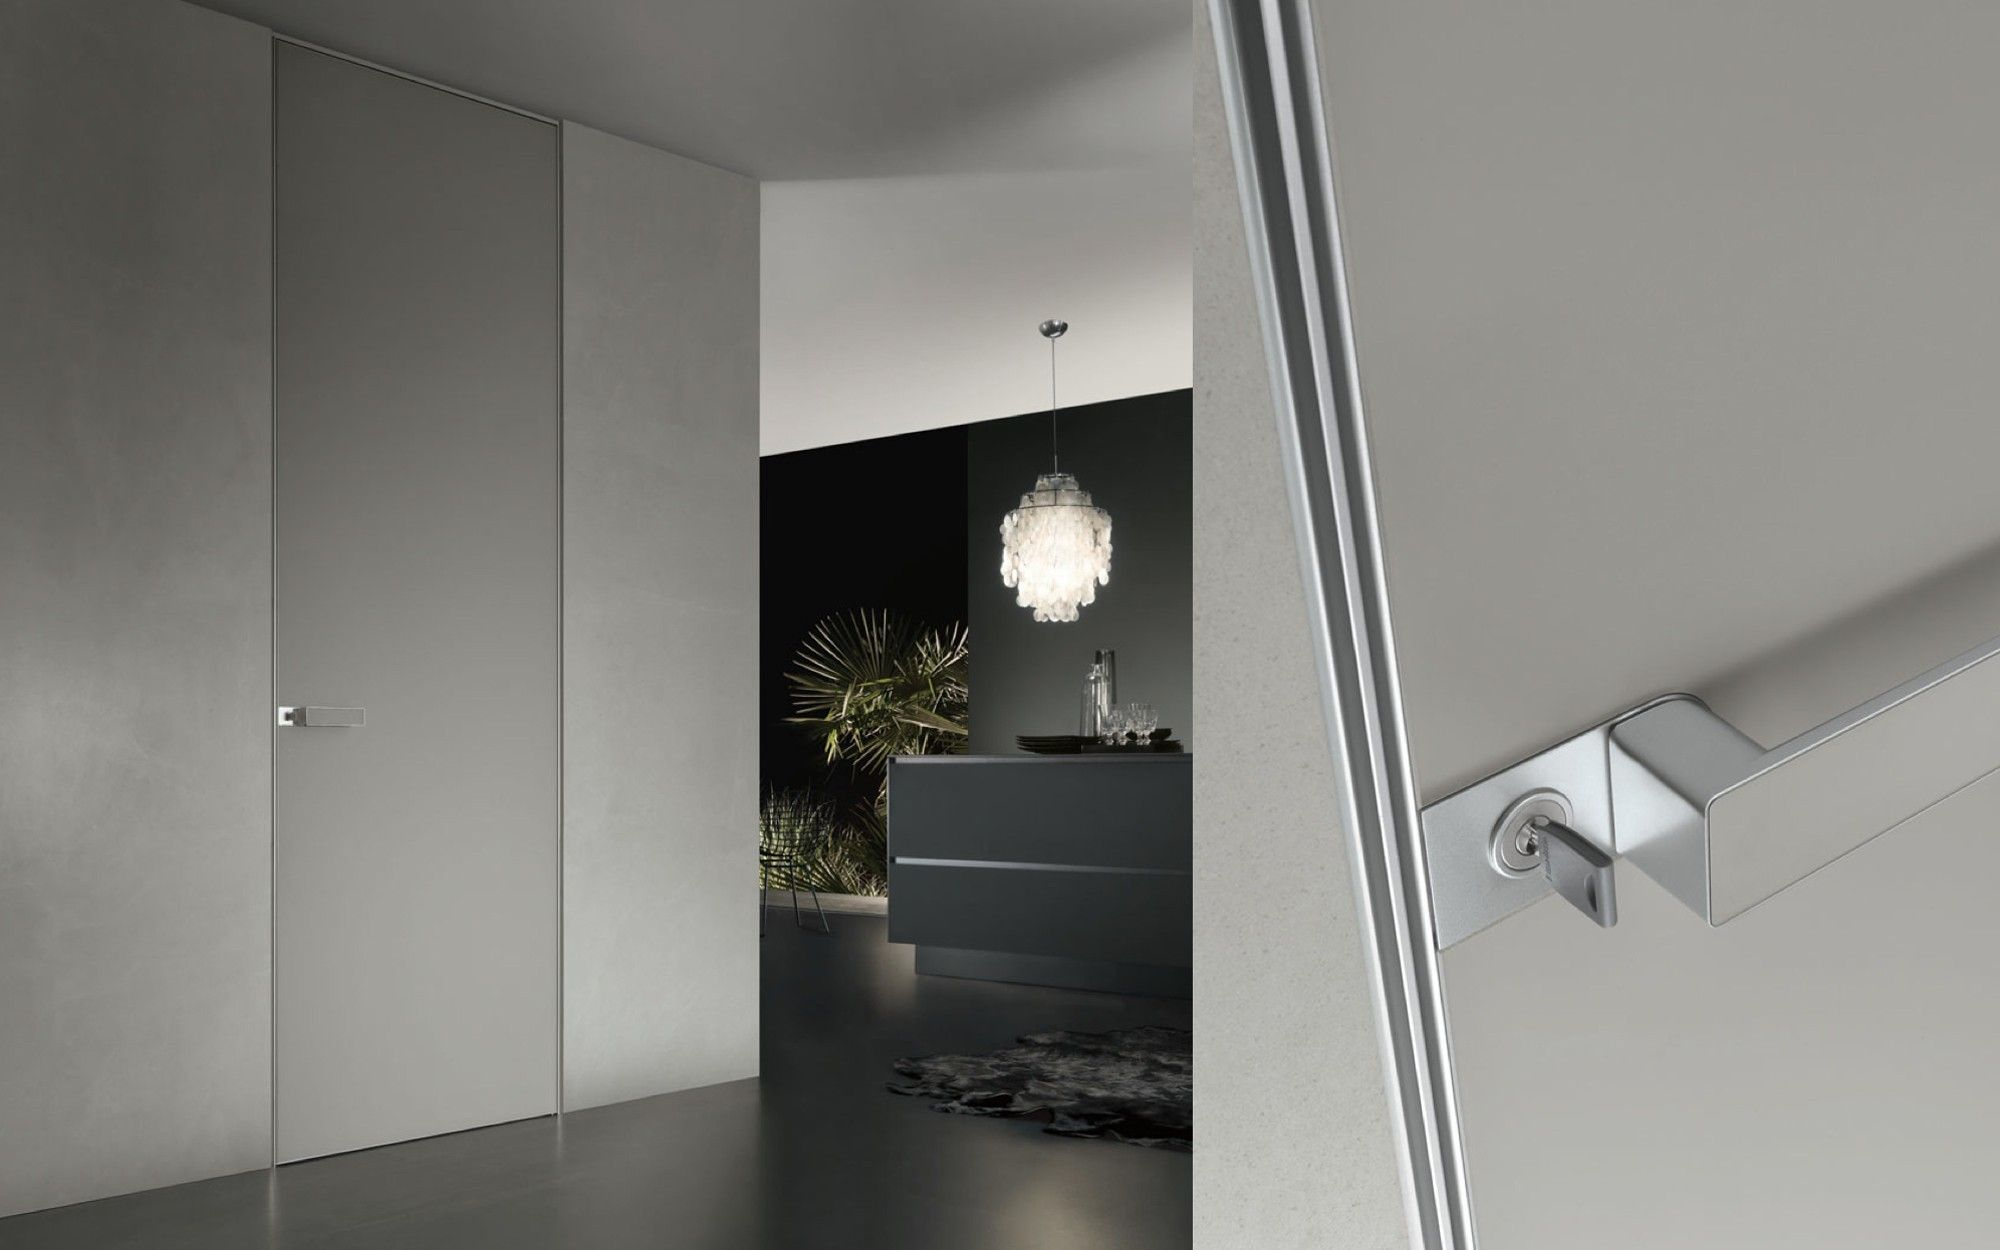 Moon door from Pure Interiors by Rimadesio. & Moon door from Pure Interiors by Rimadesio.   Doors   Pinterest ...